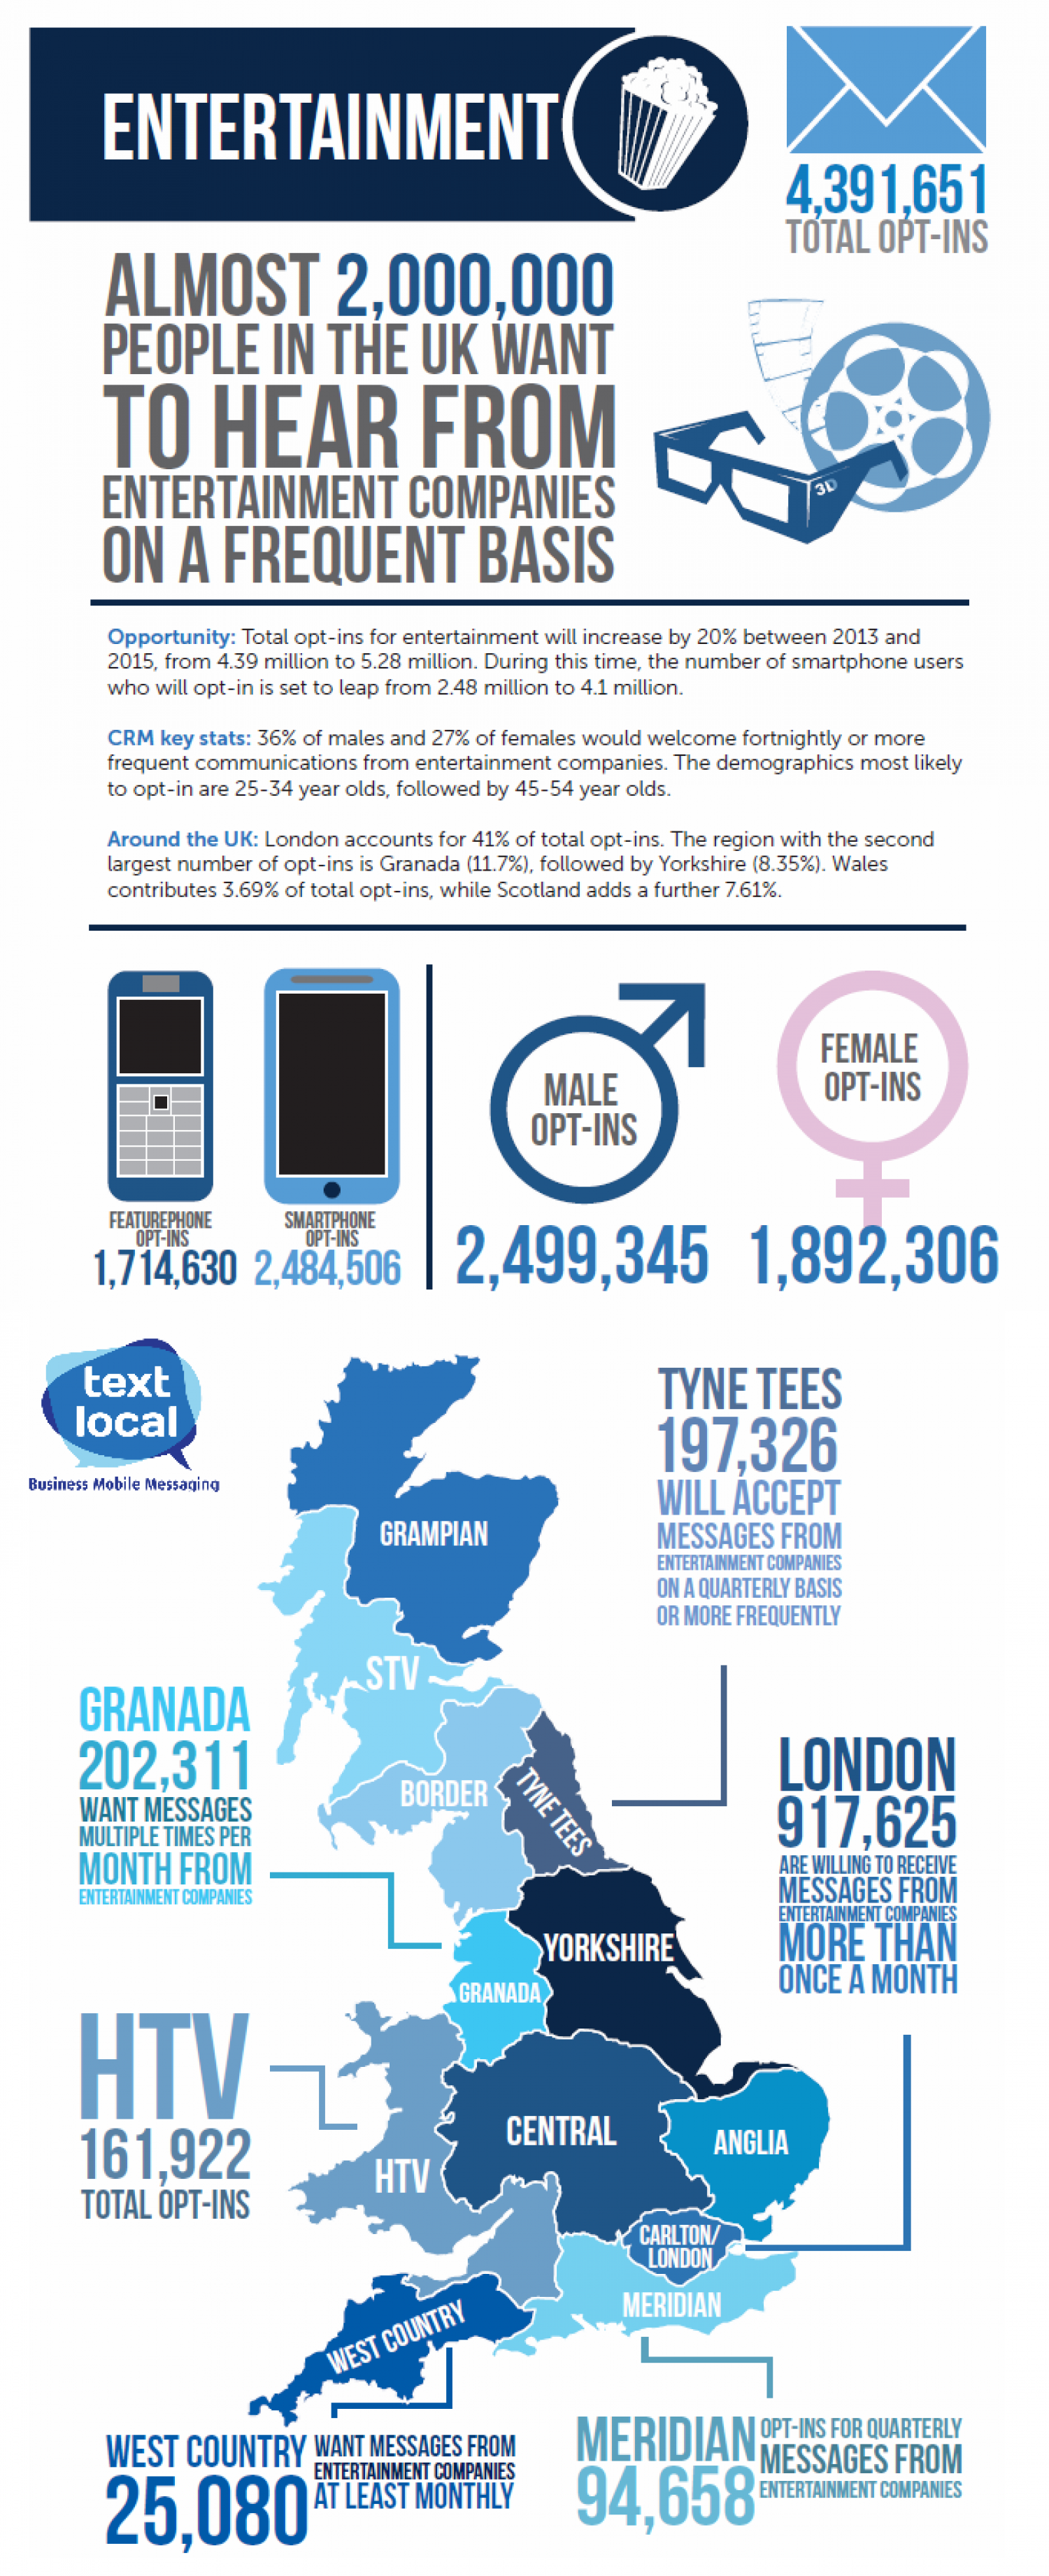 Why SMS marketing is a solid choice for the Entertainment industry Infographic